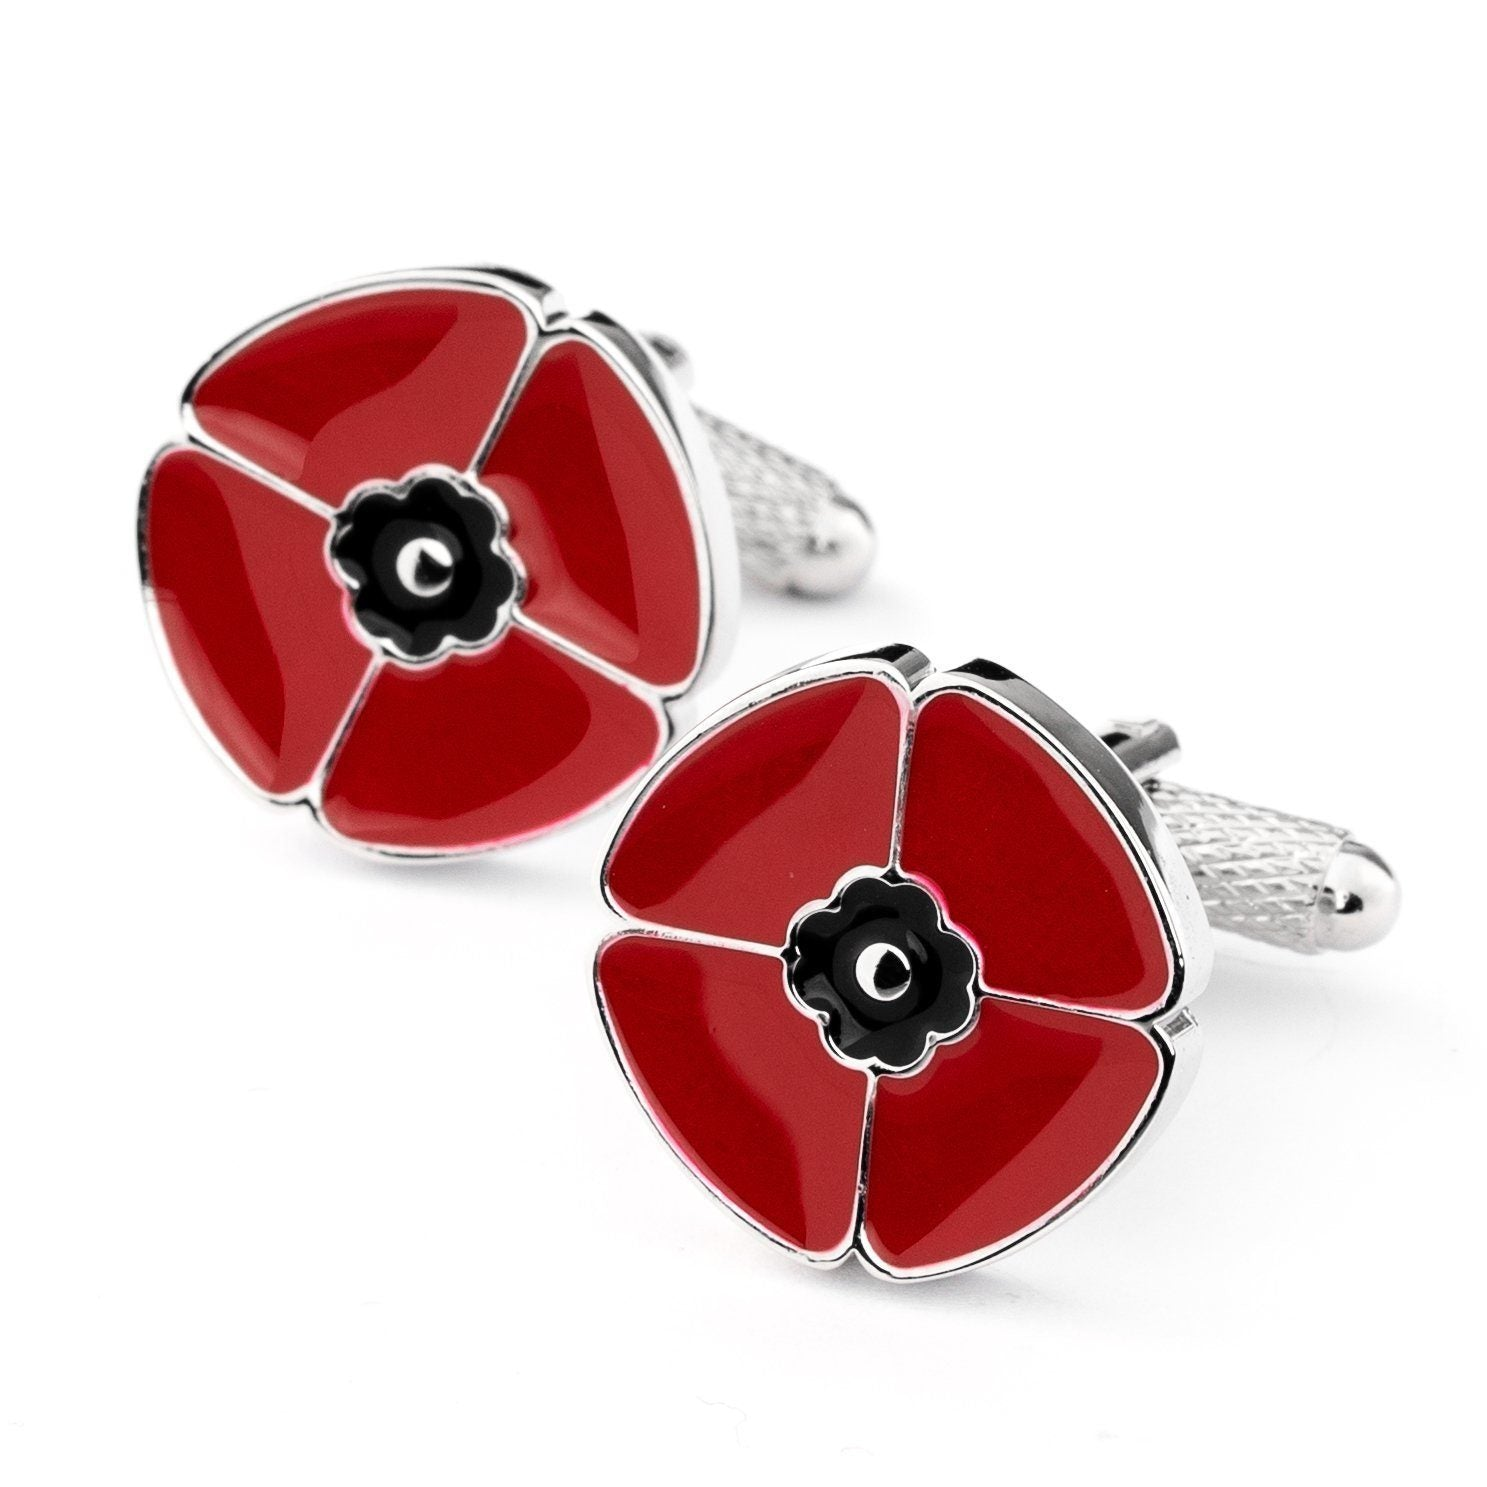 Red Poppy Remembrance Cufflinks, Novelty Cufflinks, Cuffed.com.au, CL2012, Military, Military & Weaponry, Novelty Cufflinks, Red, Clinks Australia